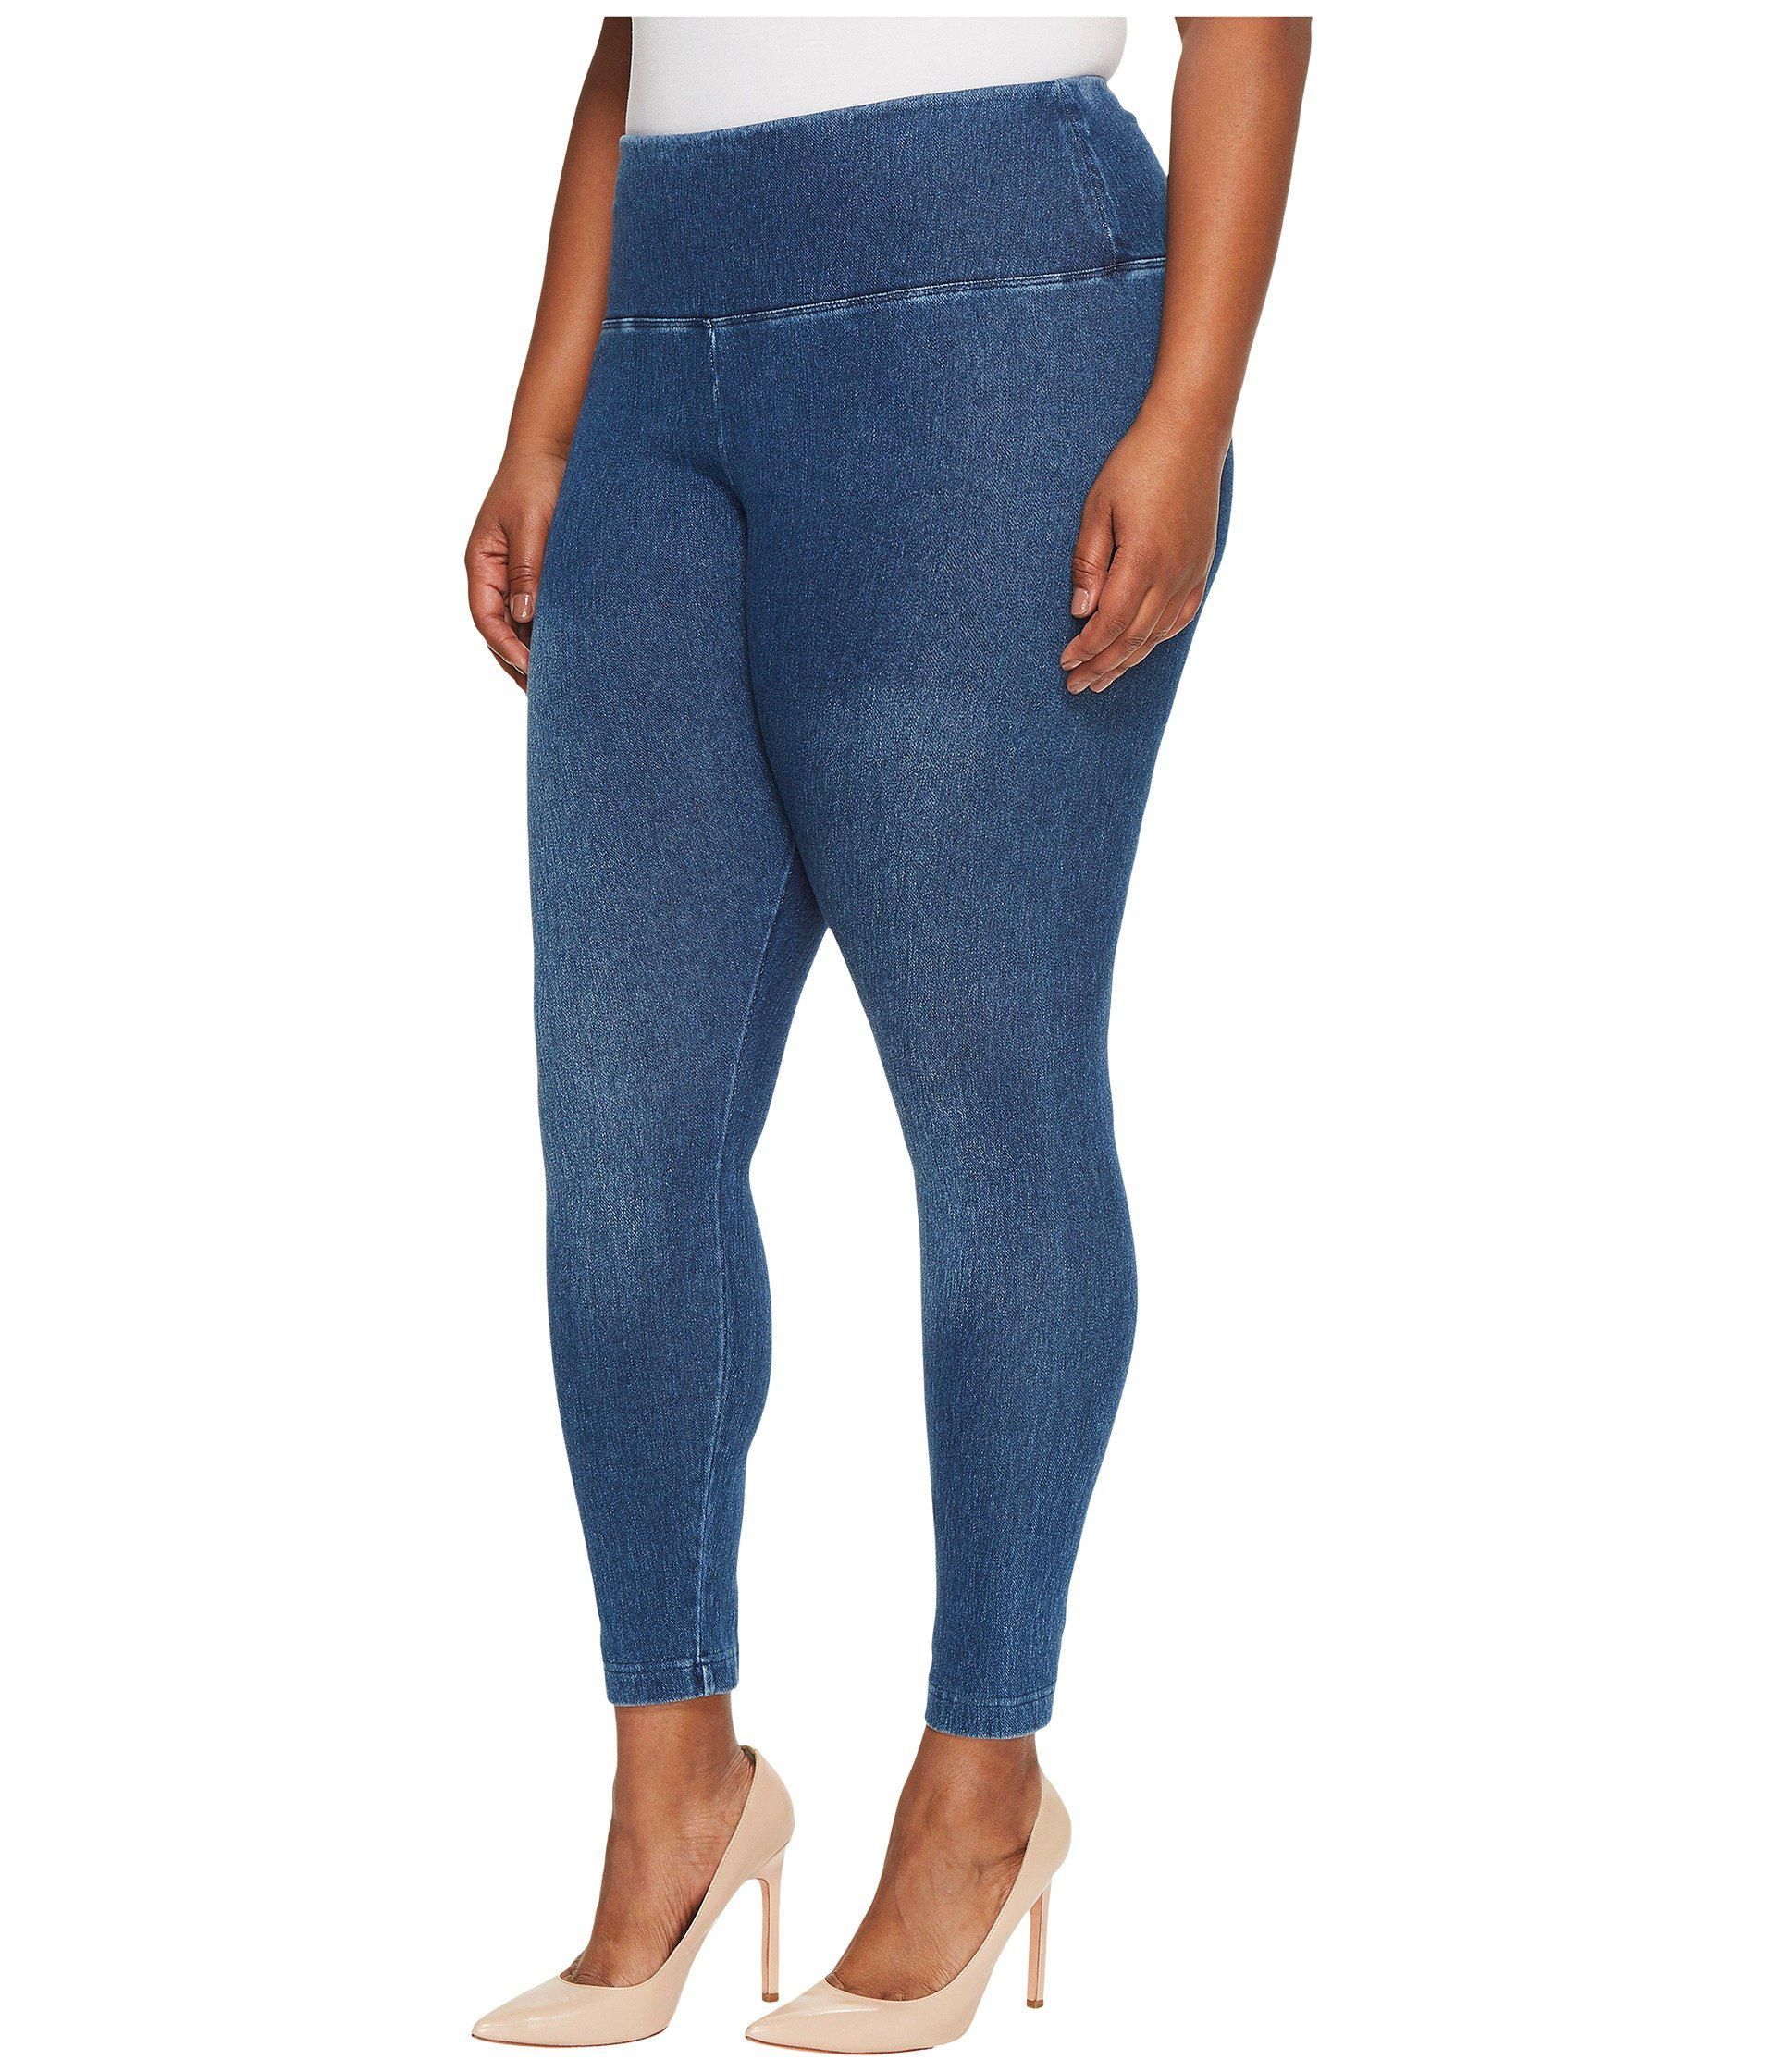 Plus Size Denim with Leggings